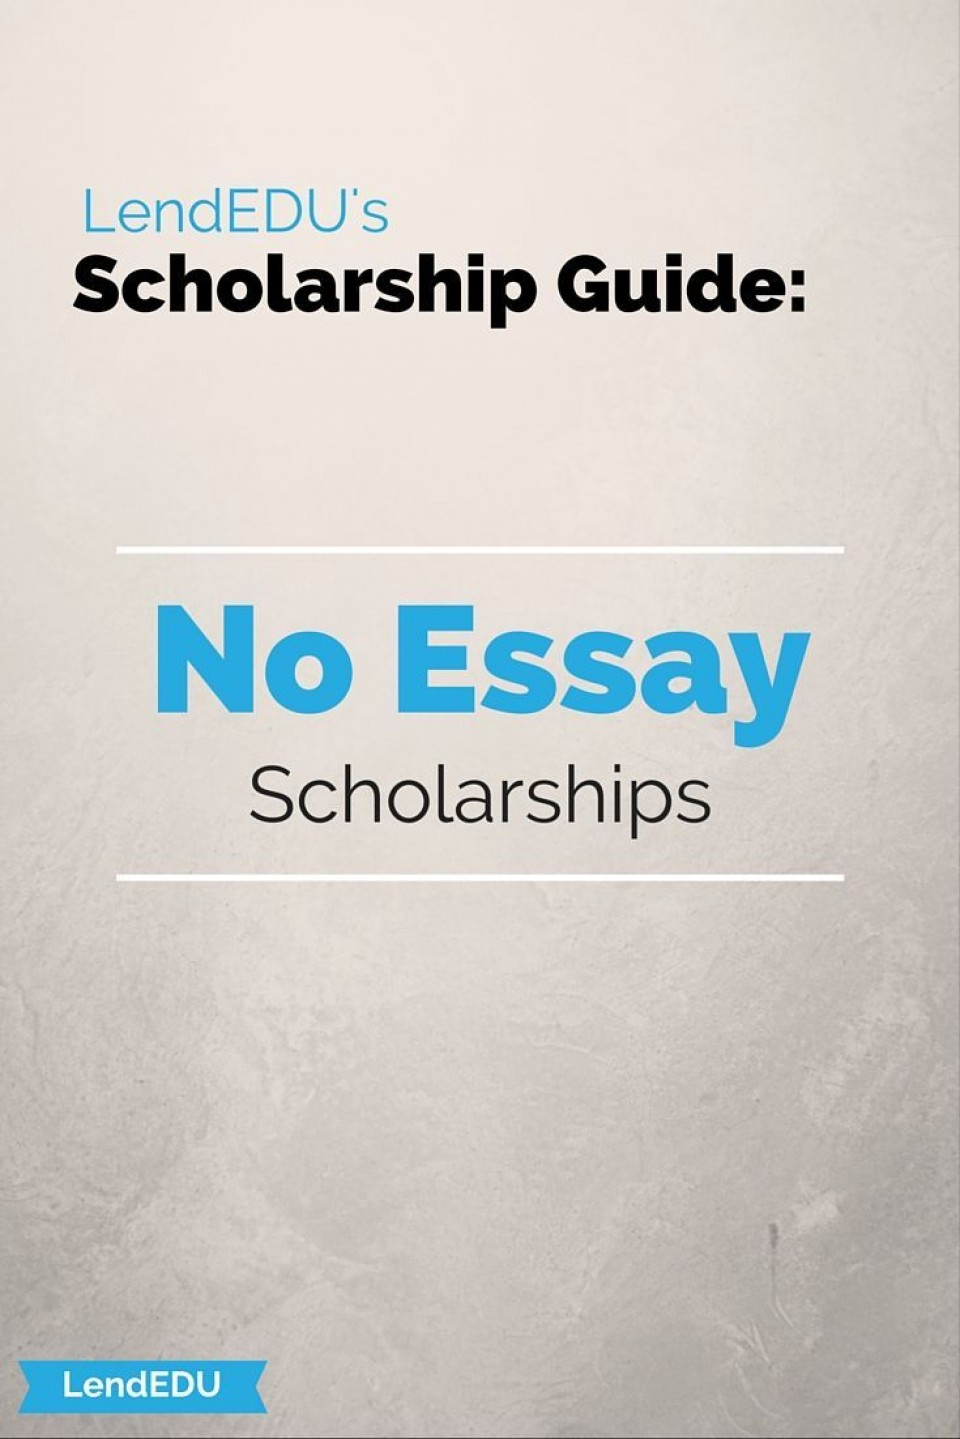 018 No Essay Scholarships Example Exceptional For Undergraduates College Students 2019 960